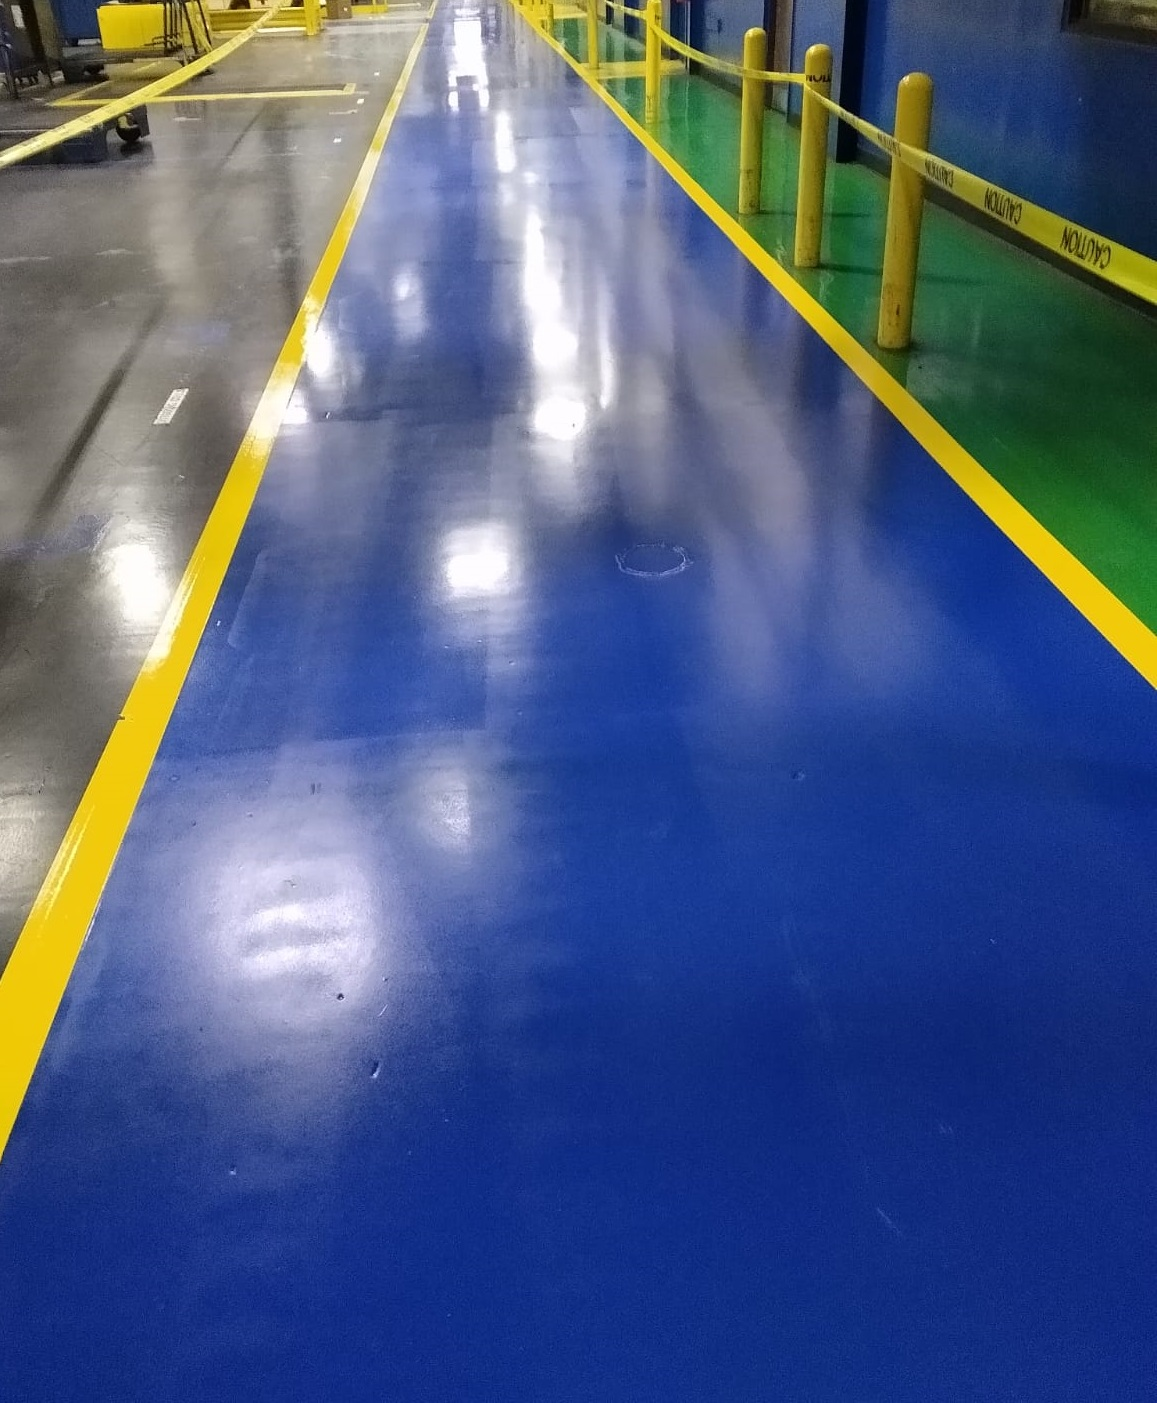 safety aisles, 5S, epoxy floor coatings, industrial floor coatings, safety striping, epoxy floor striping